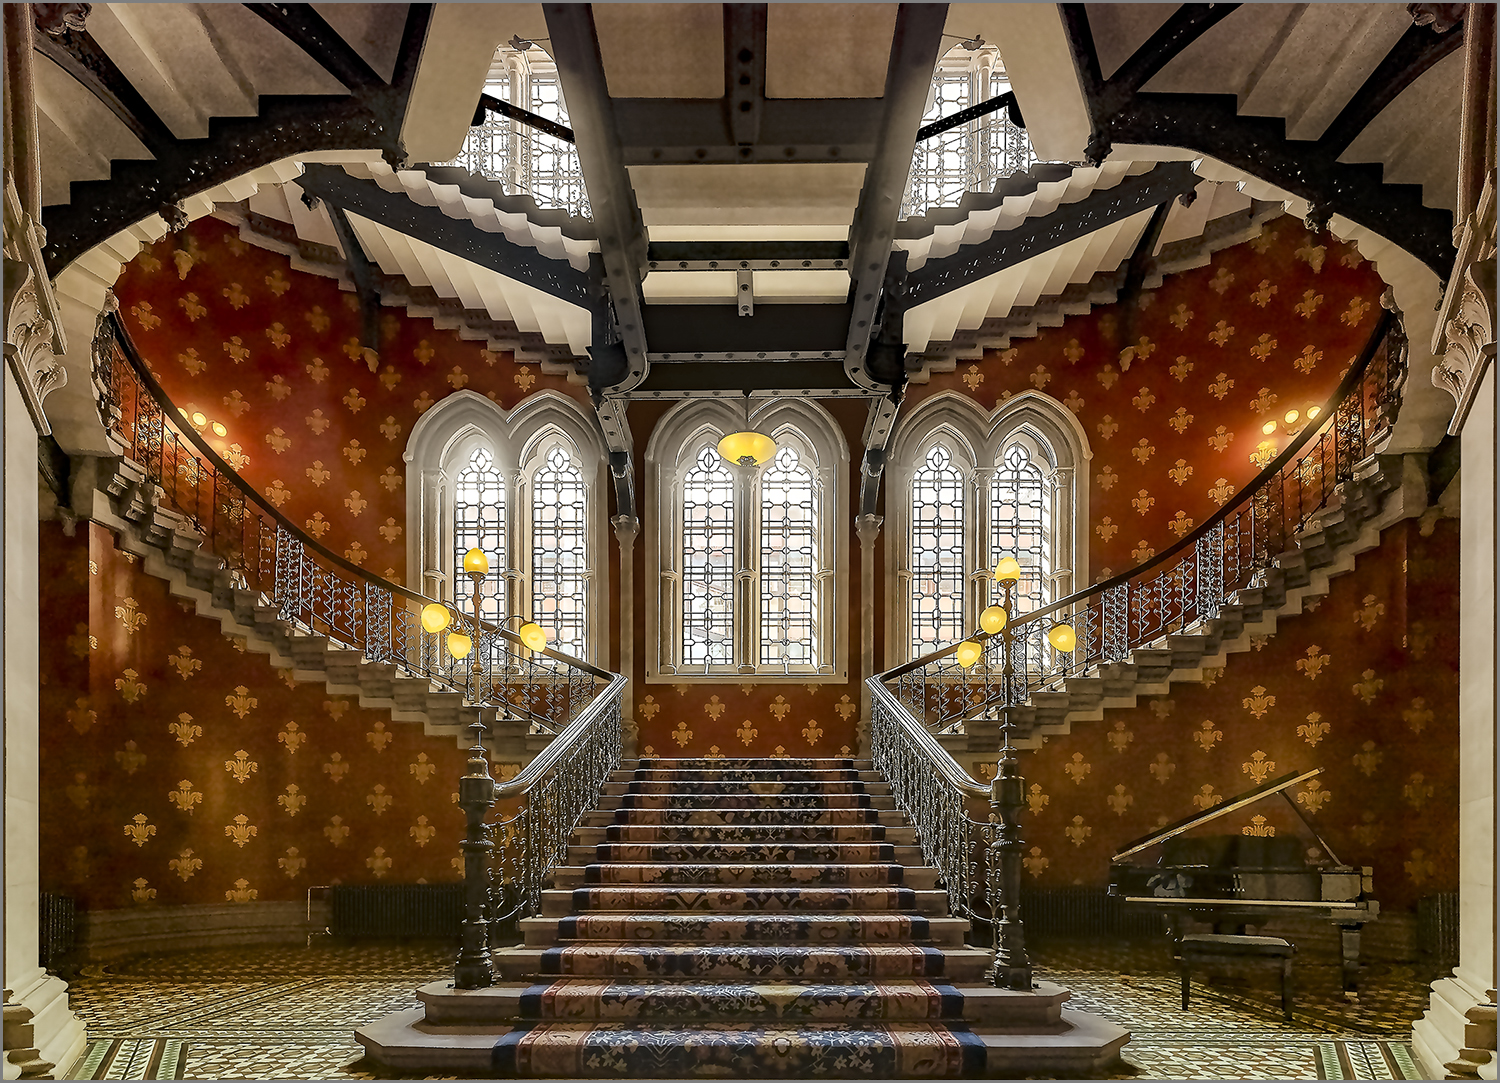 Stair at the St. Pancras Renaissance Hotel, London, United Kingdom